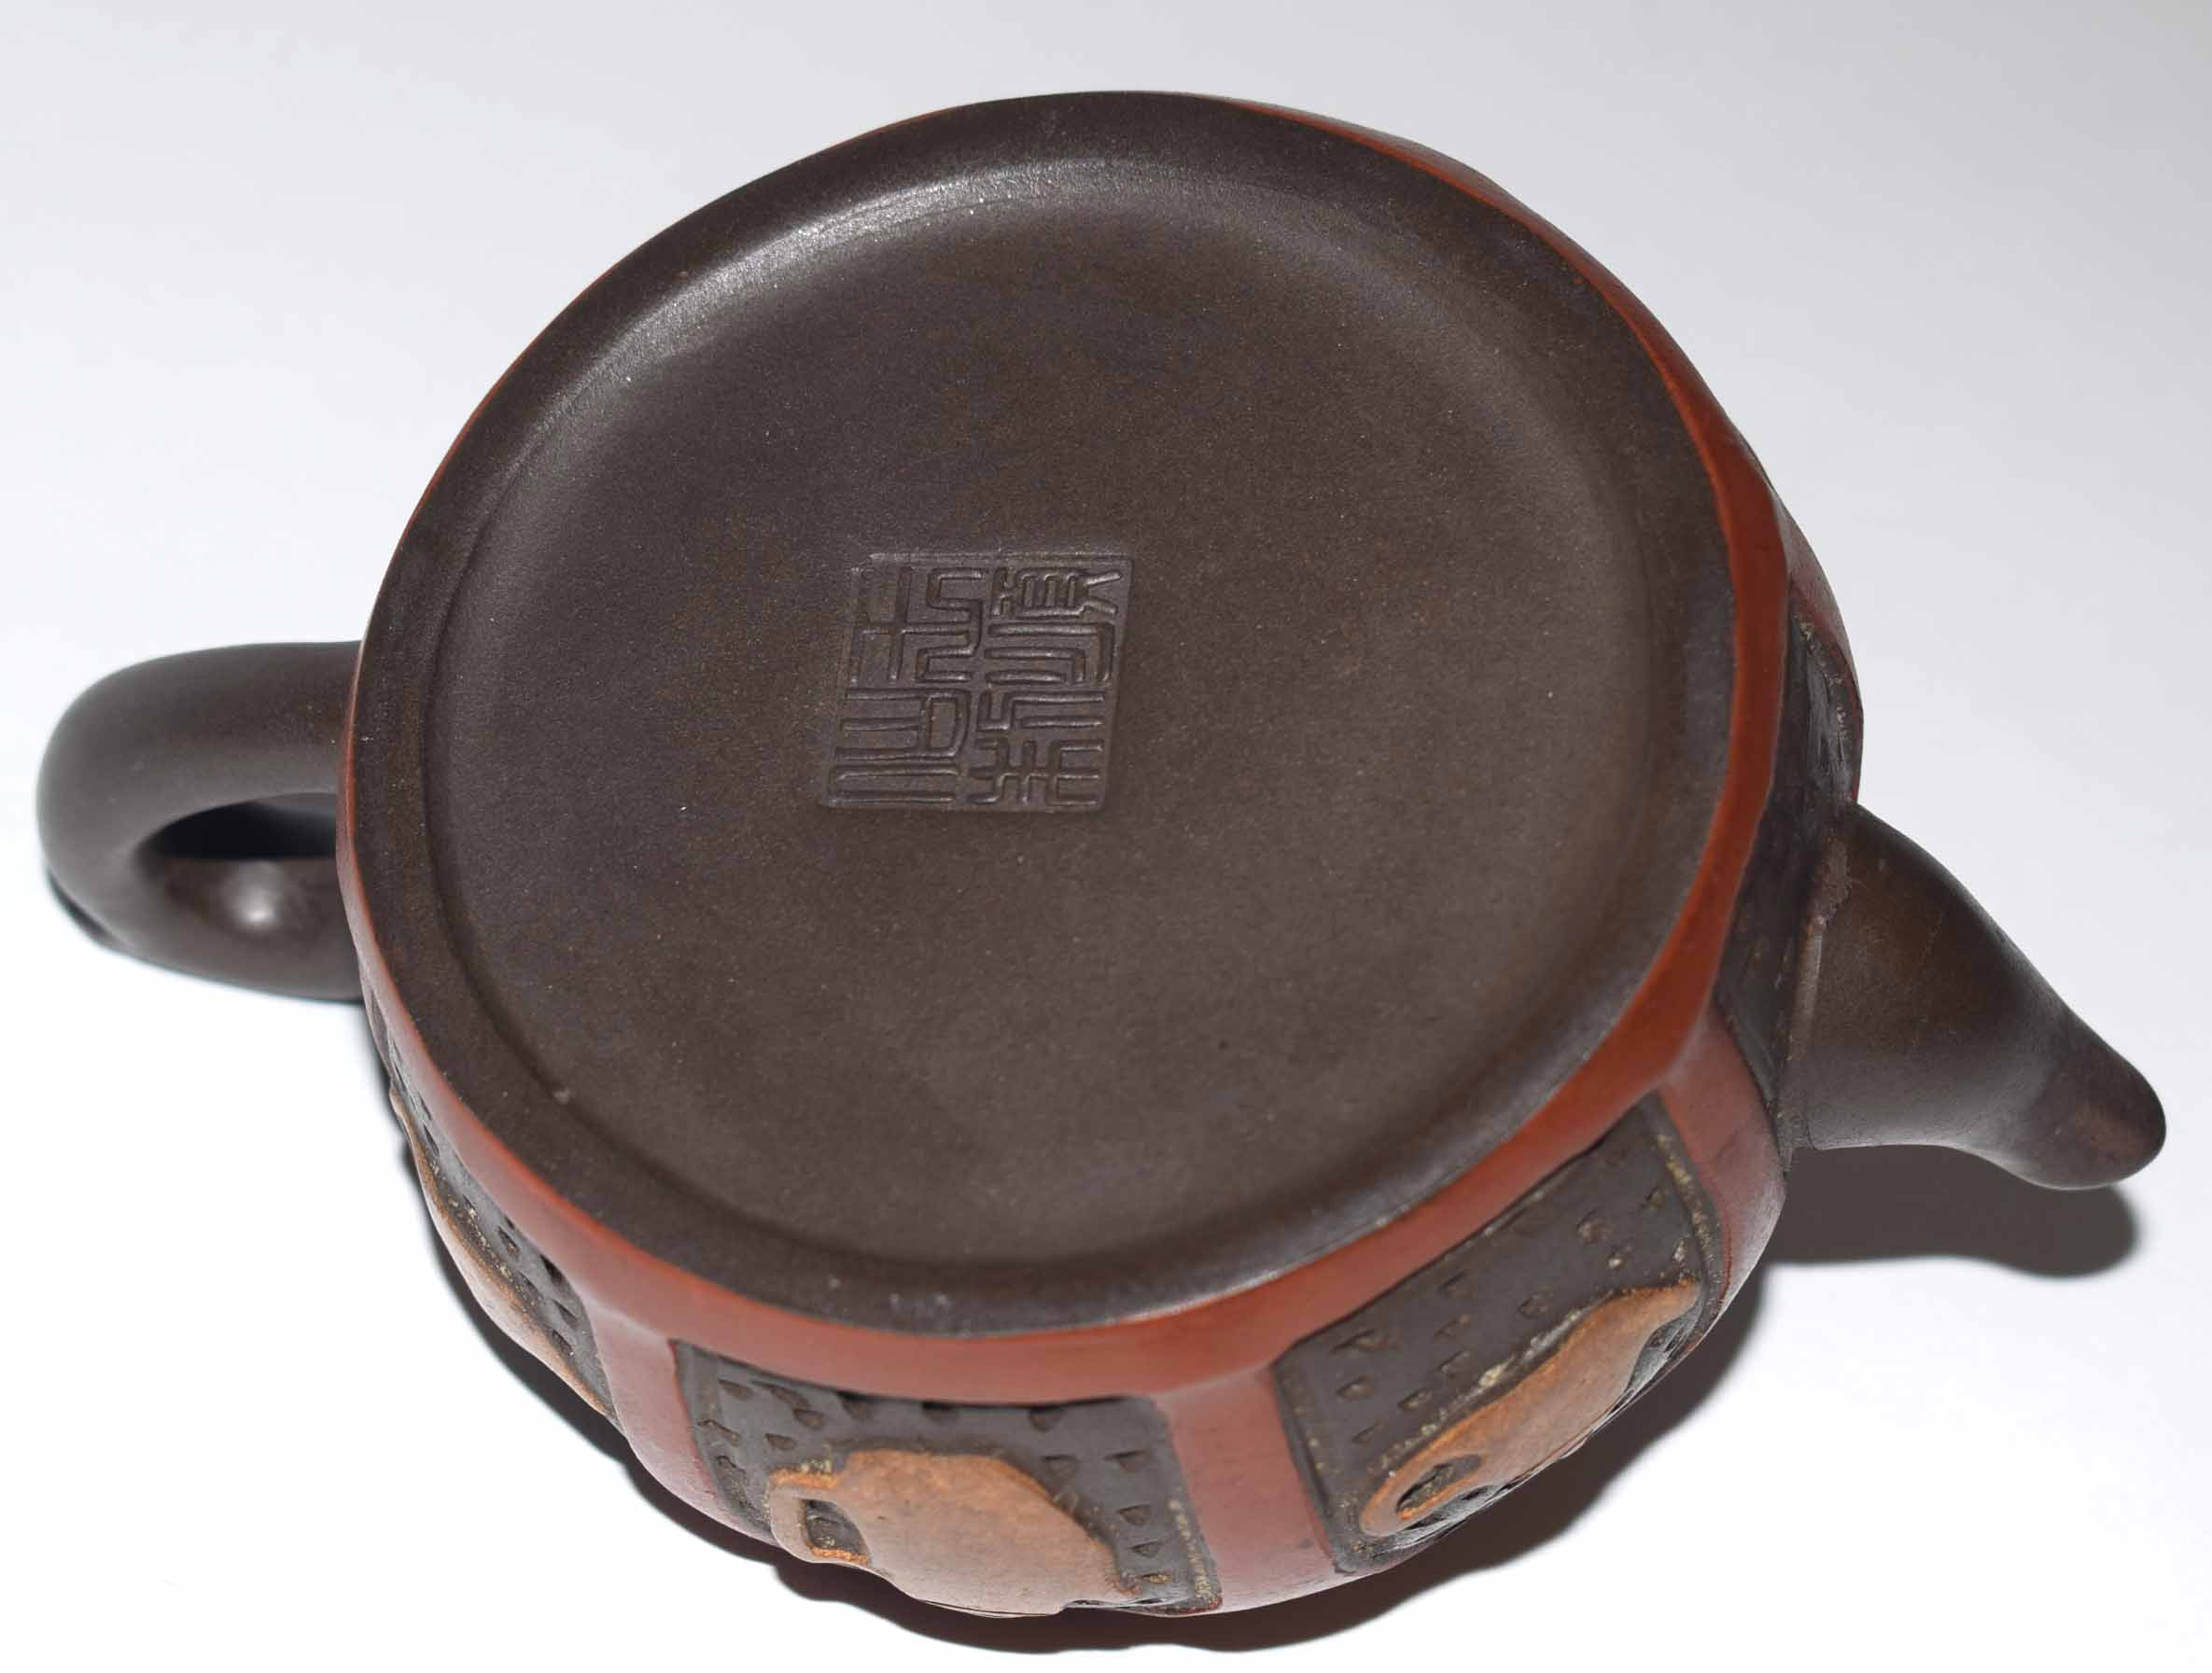 Lot 12 - Chinese red ware teapot and cover, the body decorated with tea and coffee pot motifs, the cover with